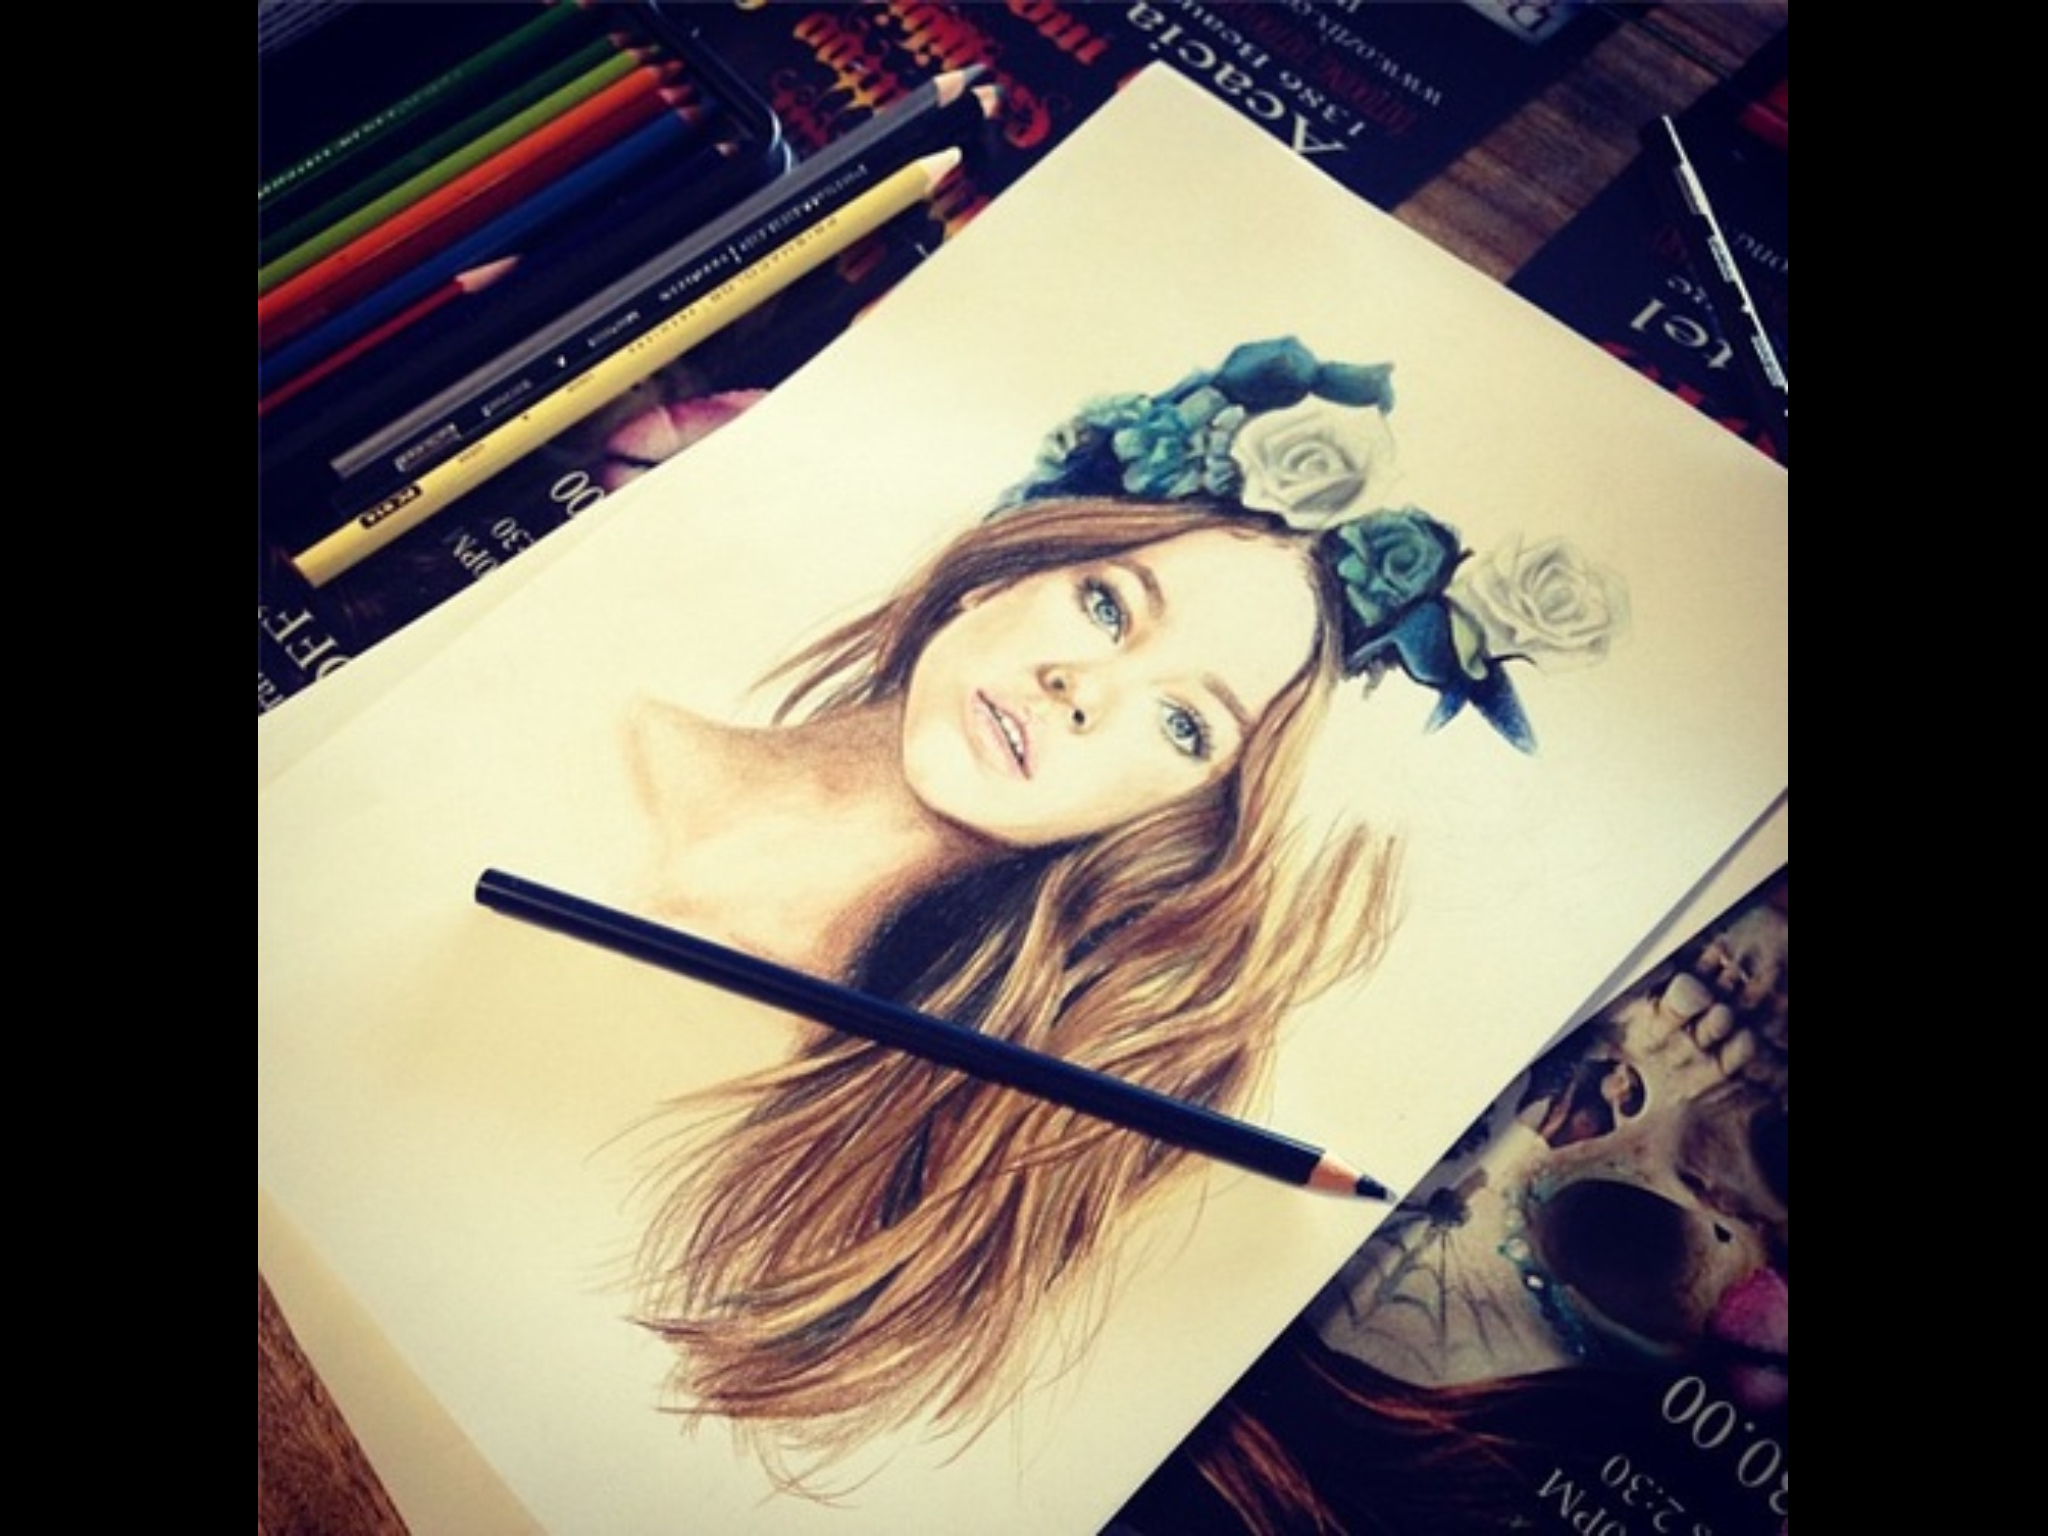 Drawn women flower crown On crown Pinterest images Drawing